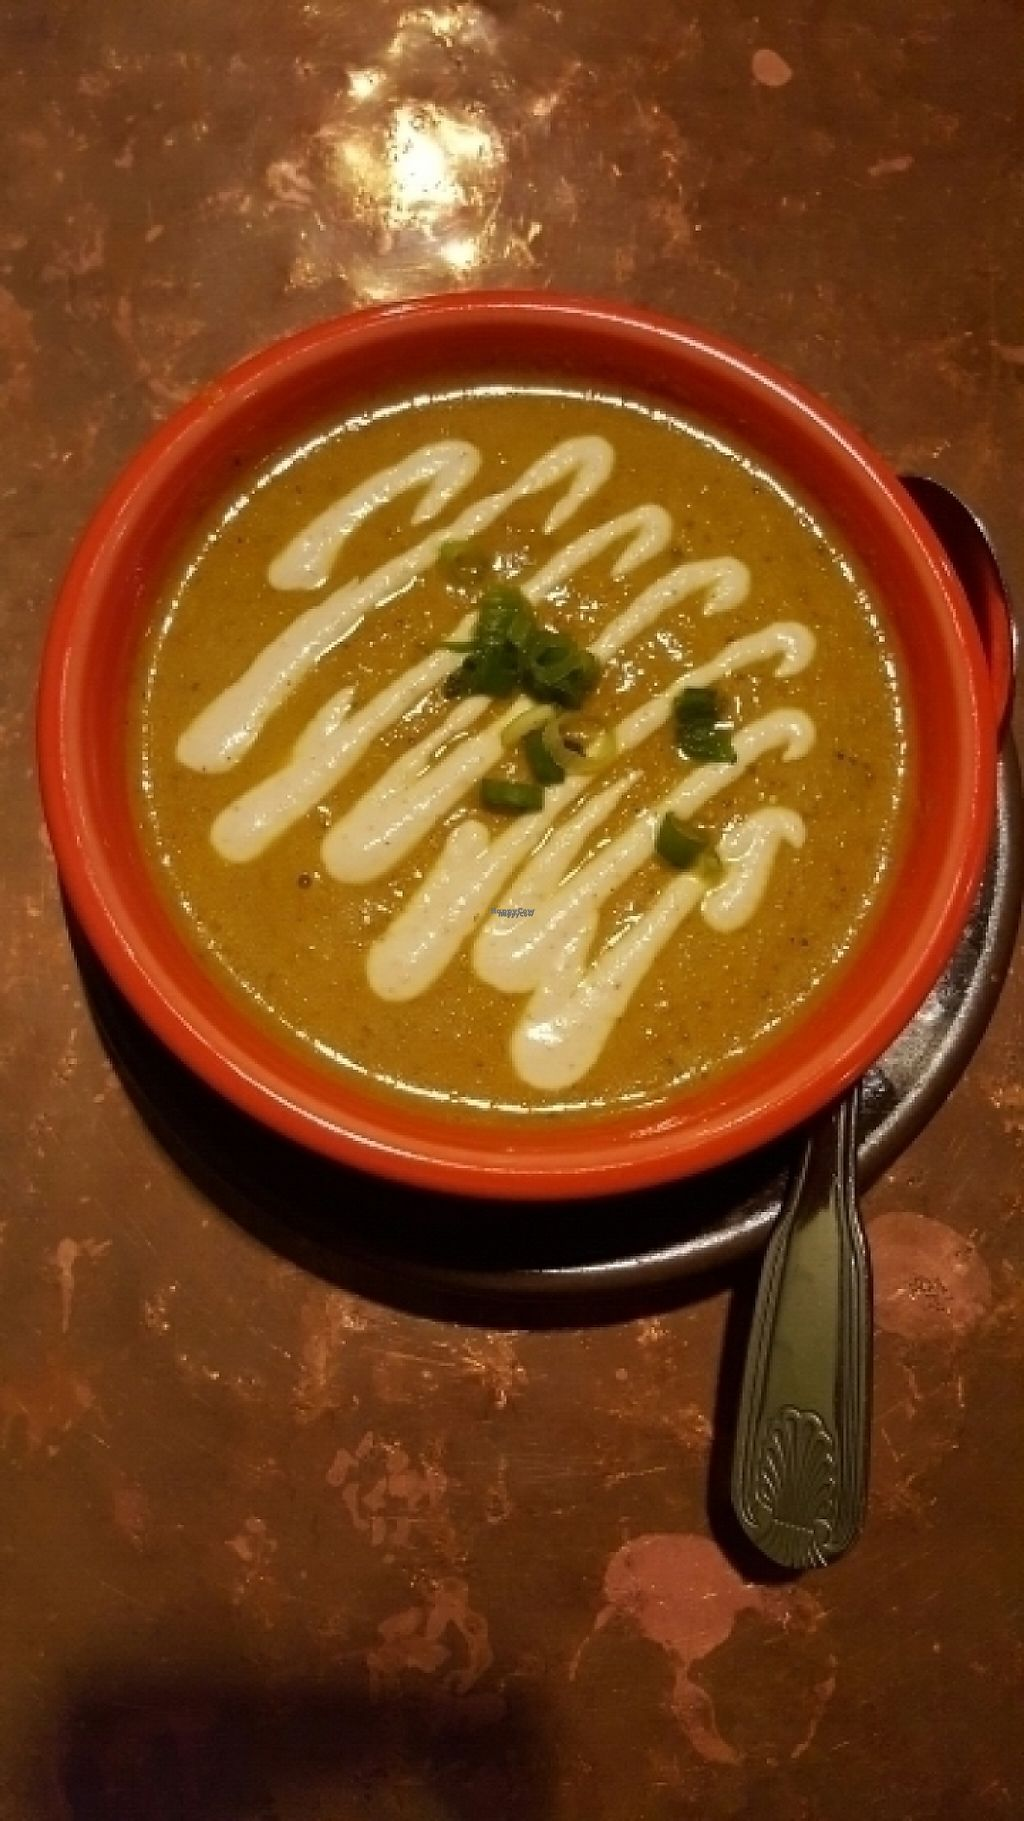 """Photo of Cafe Gratitude  by <a href=""""/members/profile/MistedForest"""">MistedForest</a> <br/>love their spicey curry soup special <br/> August 11, 2016  - <a href='/contact/abuse/image/28319/188933'>Report</a>"""